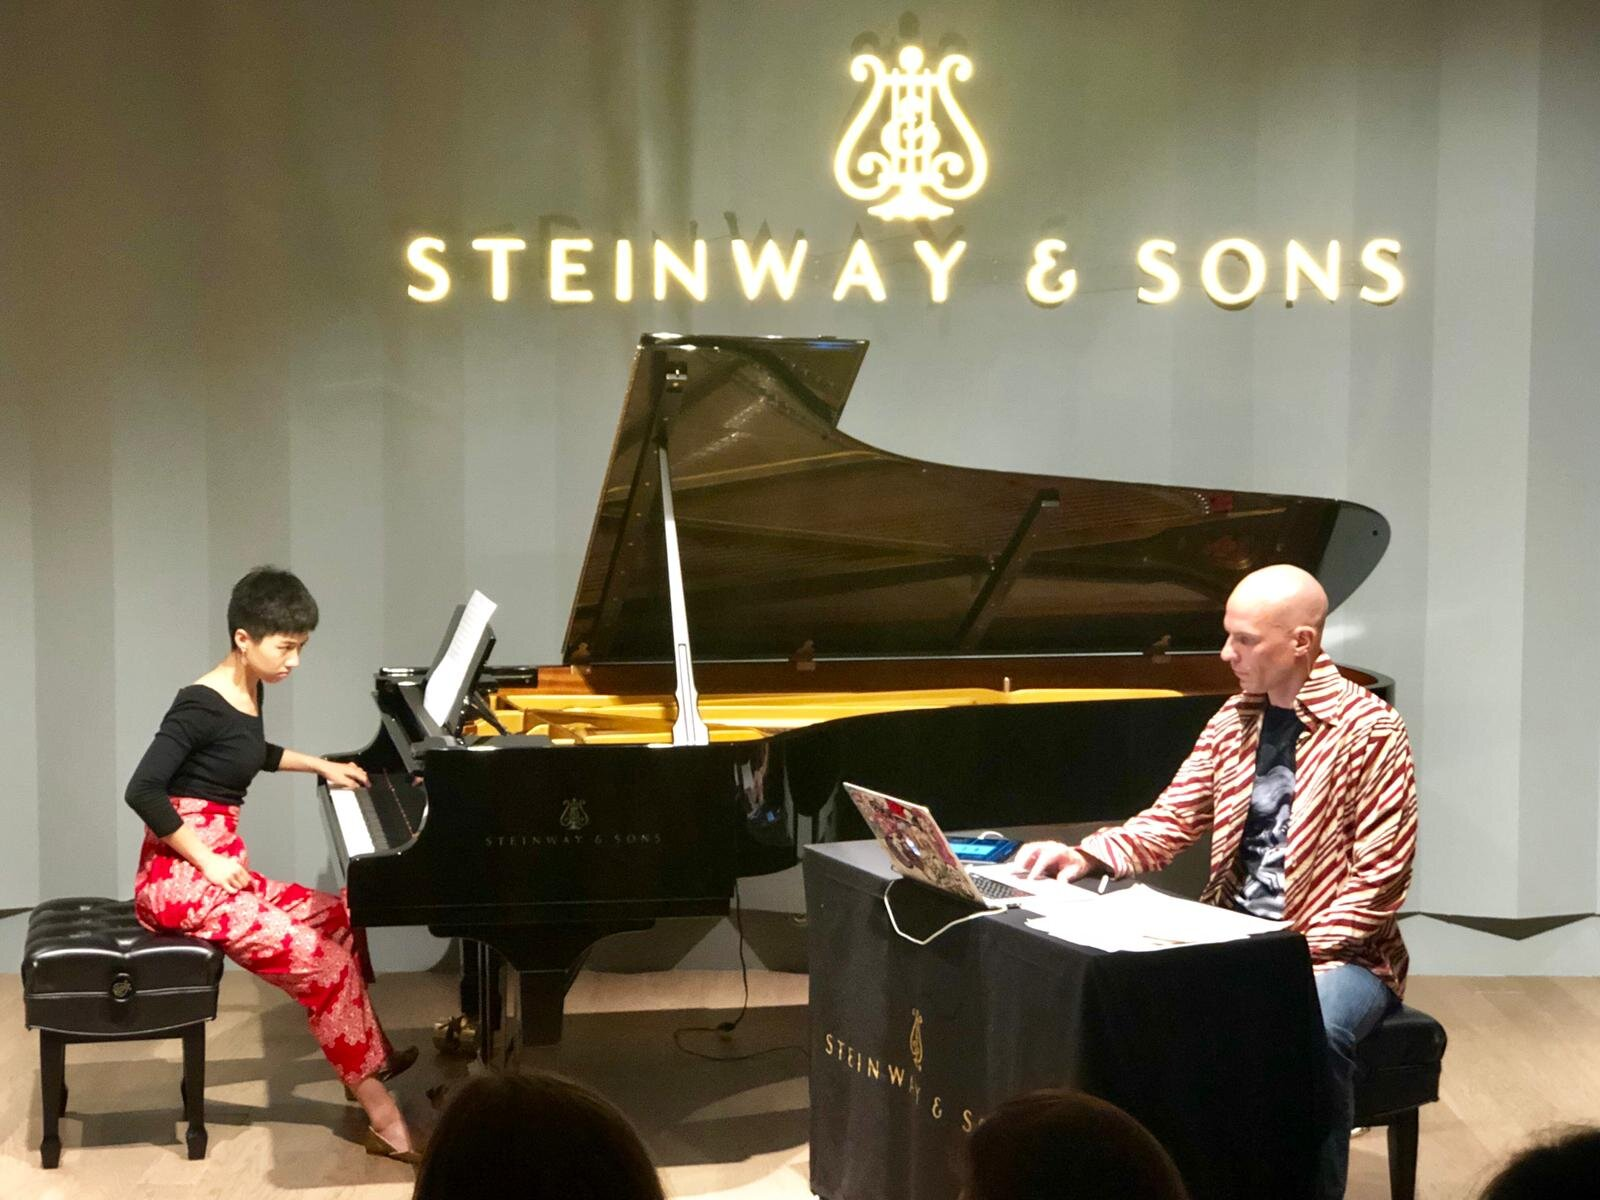 Tectonic Shifts with composer Felix Leuschner at Steinway Gallery Singapore